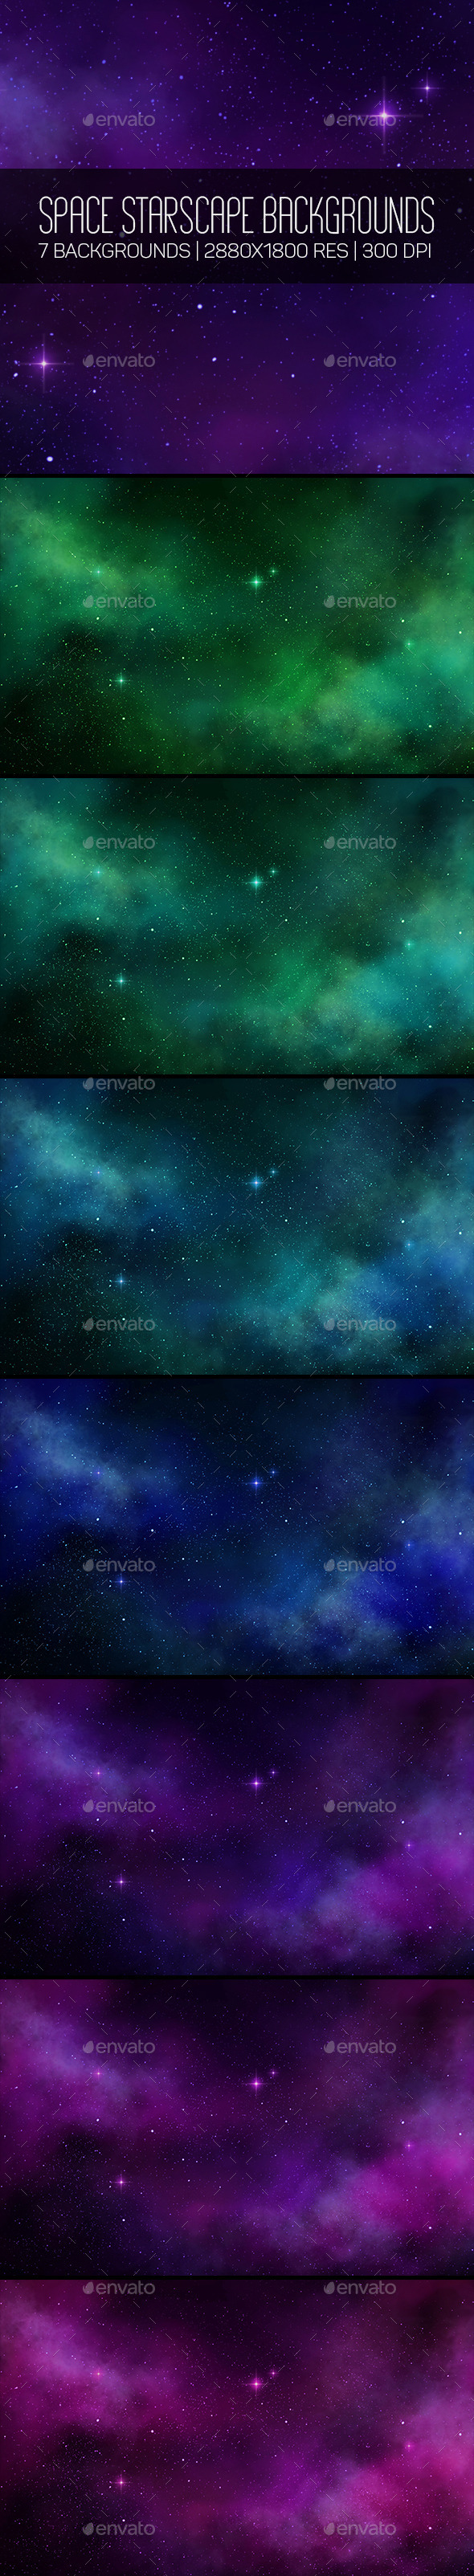 Space Starscape Backgroungs - Abstract Backgrounds